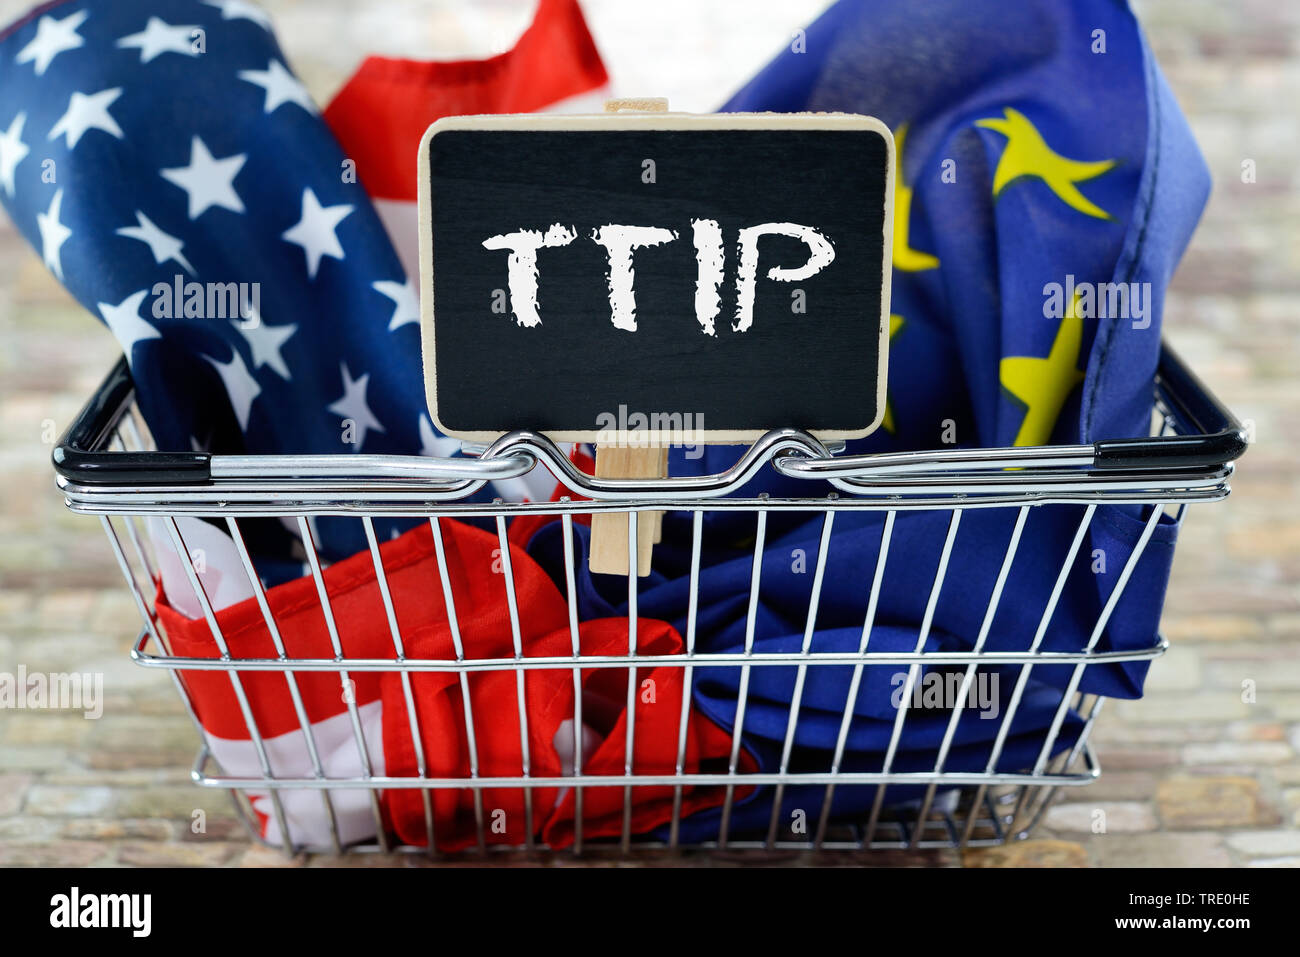 USA- und Europaflagge als Symbol fuer das TTIP-Freihandelsabkommen, Deutschland | US and European Union flags symbolizing the TTIP Trade Agreement, Ge - Stock Image